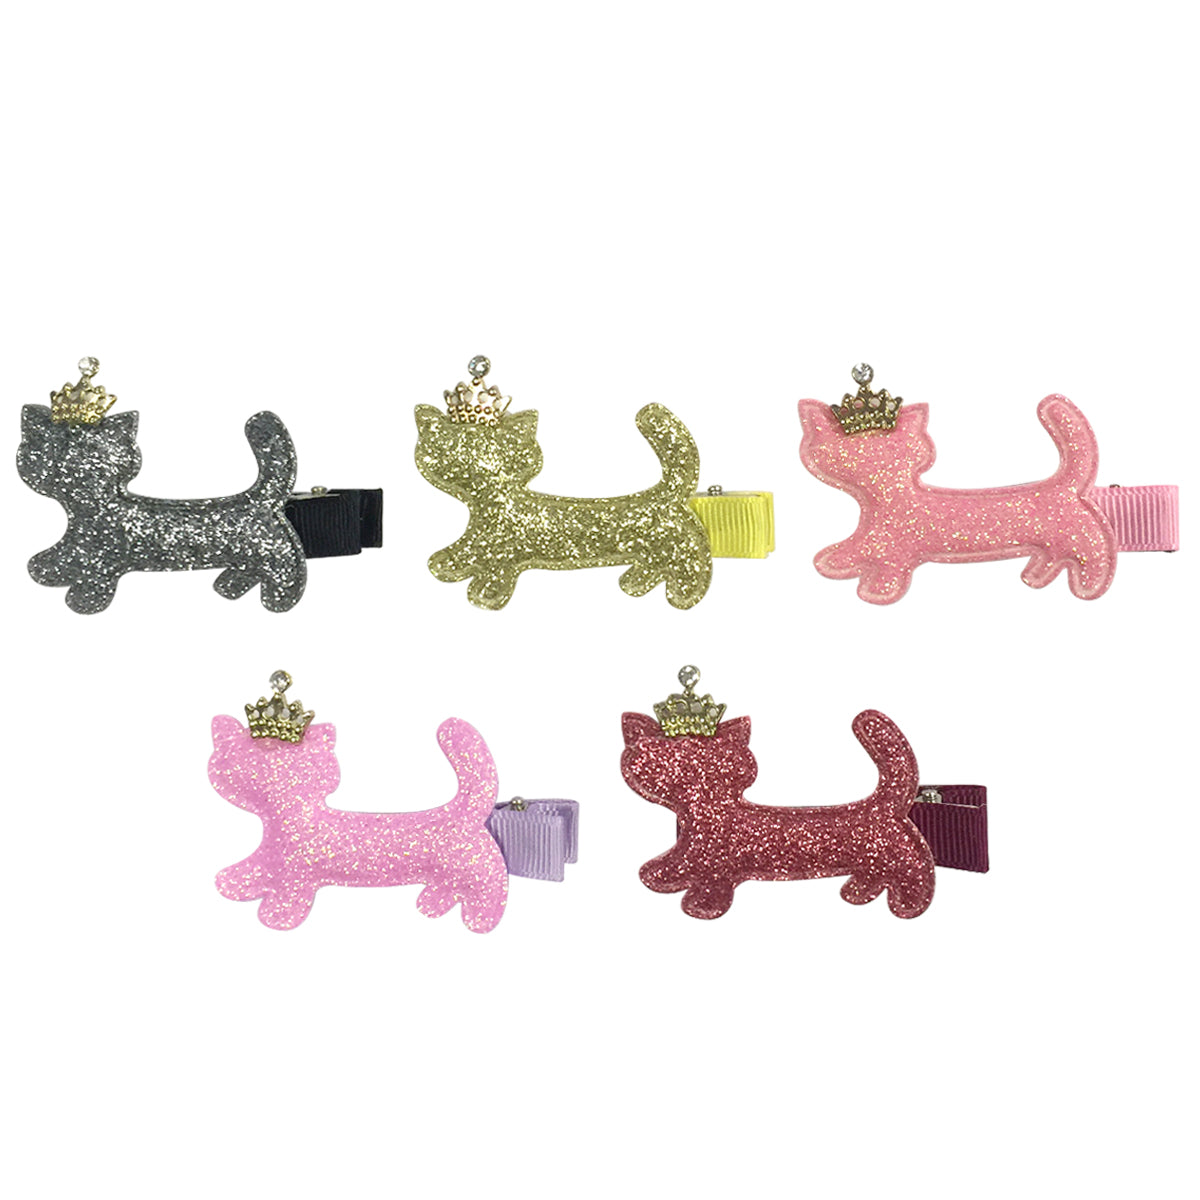 Wrapables Dress Up Sparkly Kitties Hair Clips, Set of 5